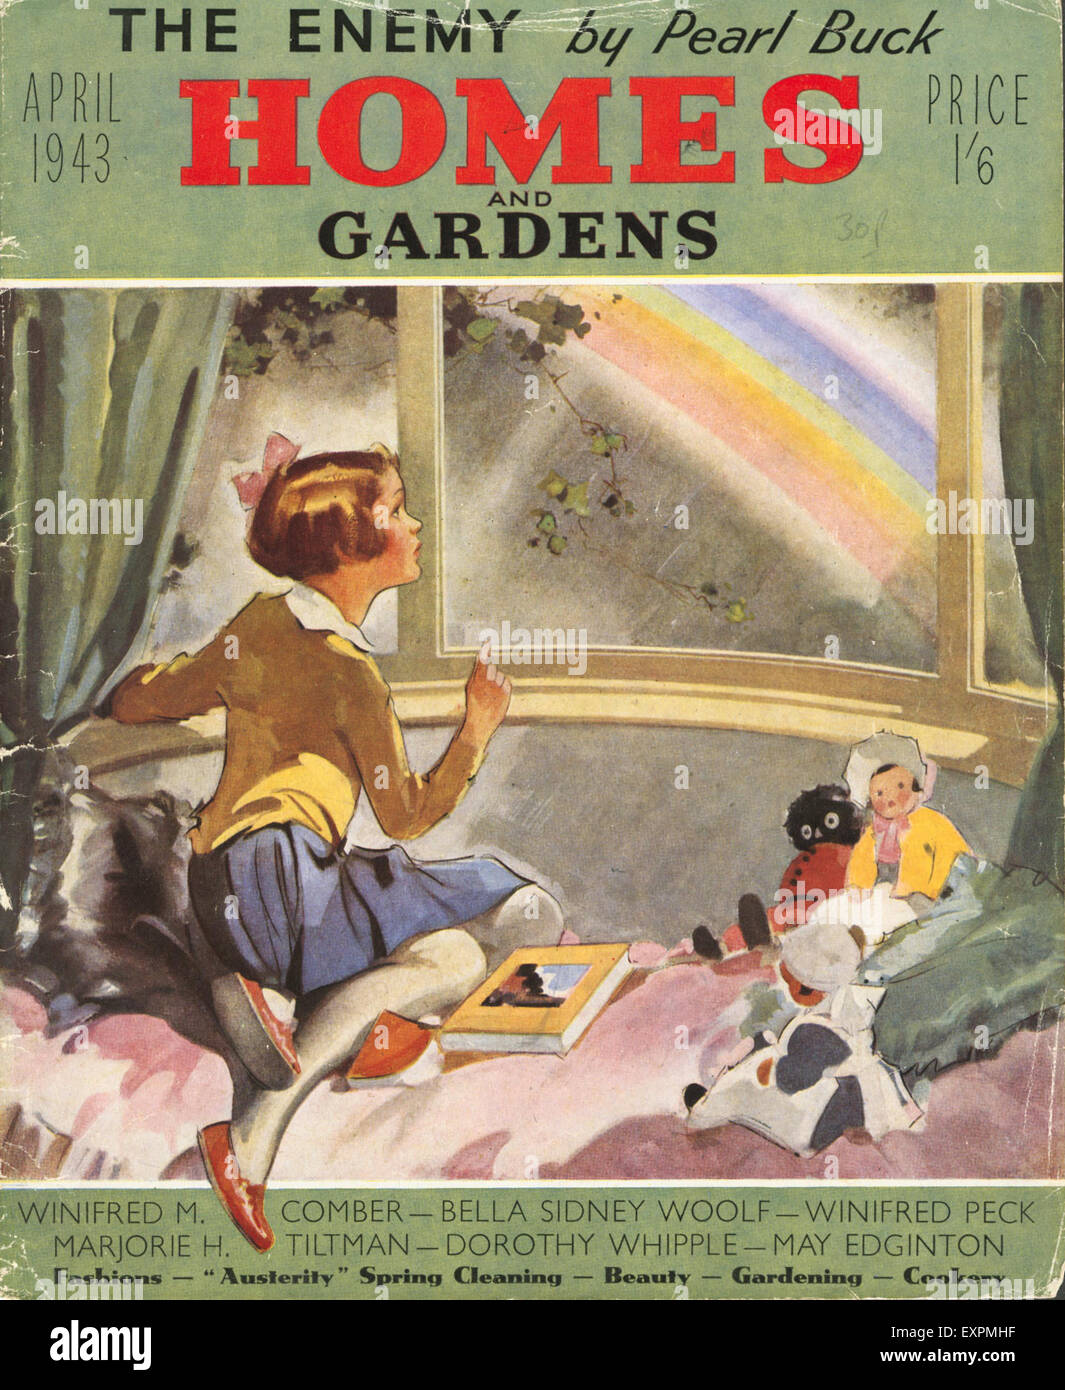 1940s UK Homes and Gardens Magazine Cover - Stock Image